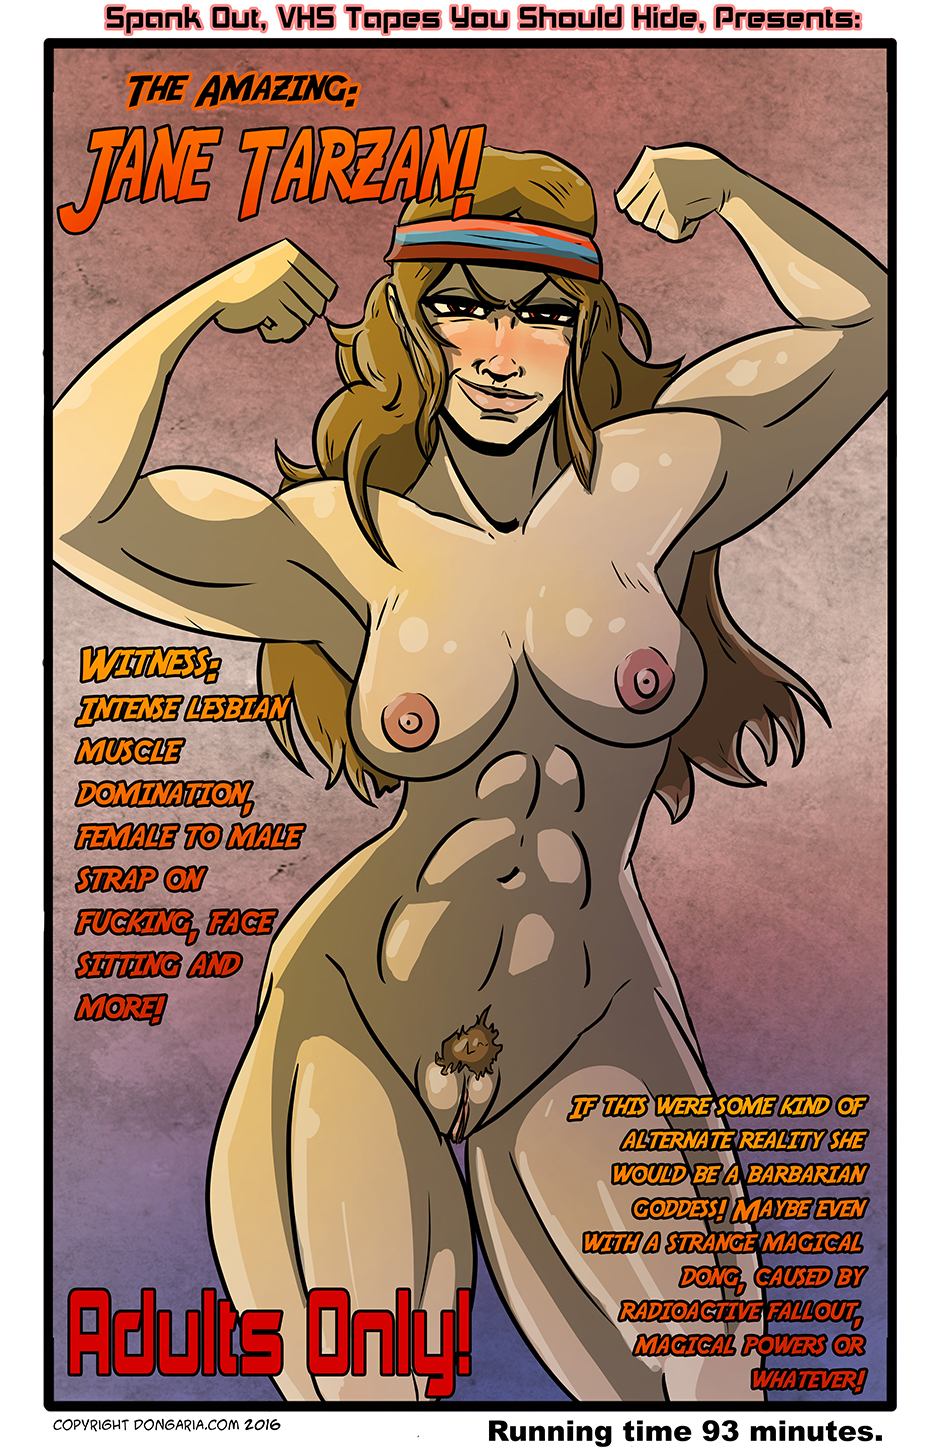 Babes of Dongaria Chapter 3 Page 7: A Closer Look At The Poster...